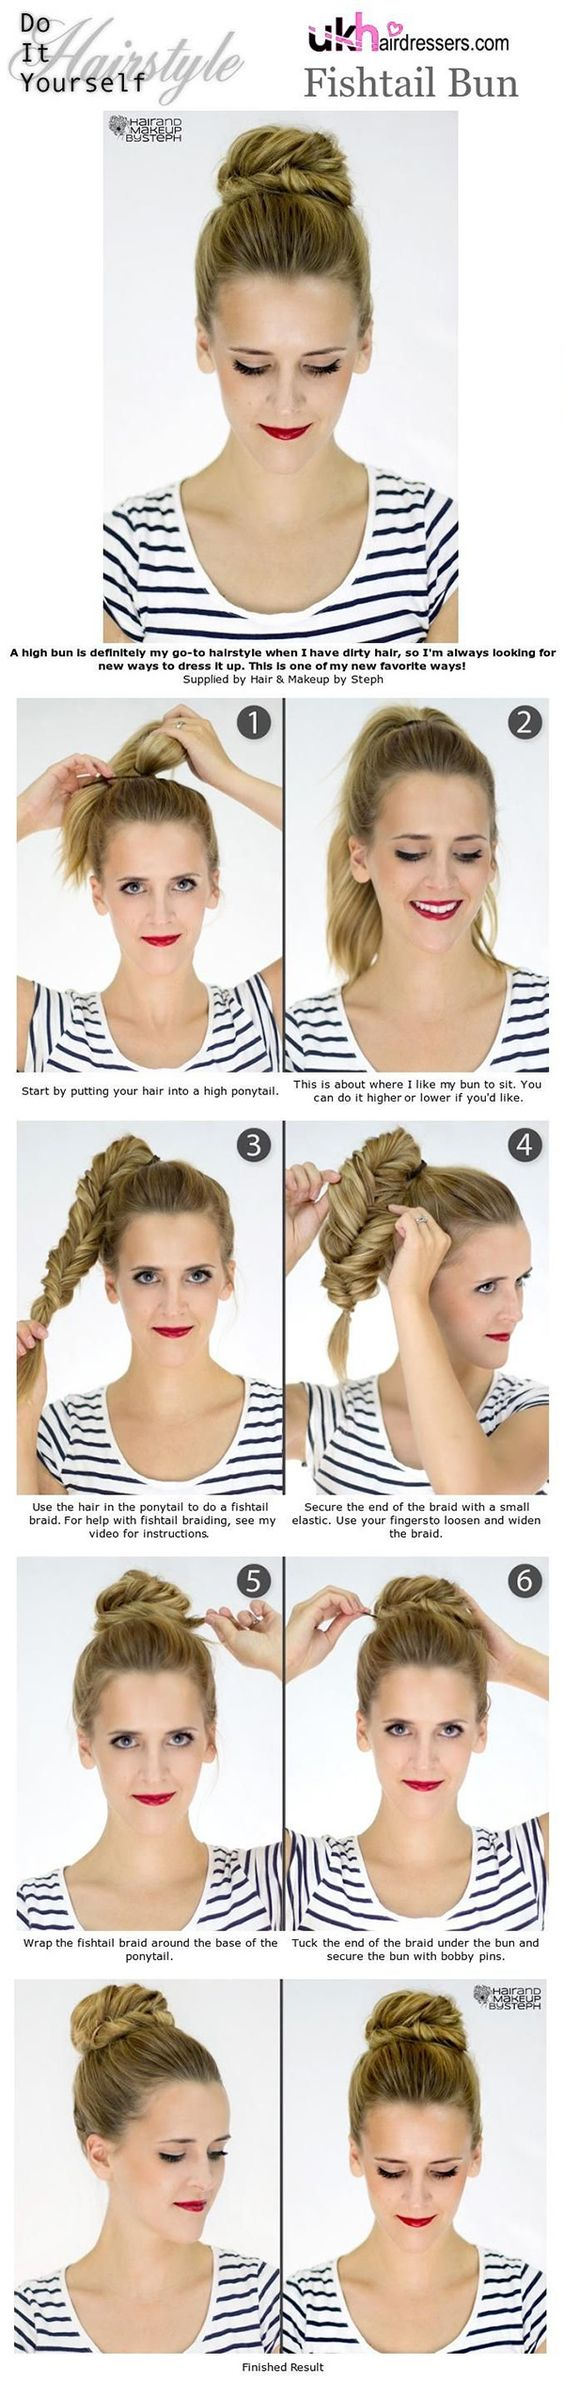 Easy NoHeat Hairstyles For Dirty Hair Shorts Easy And Hair - 15 spectacular diy hairstyle ideas